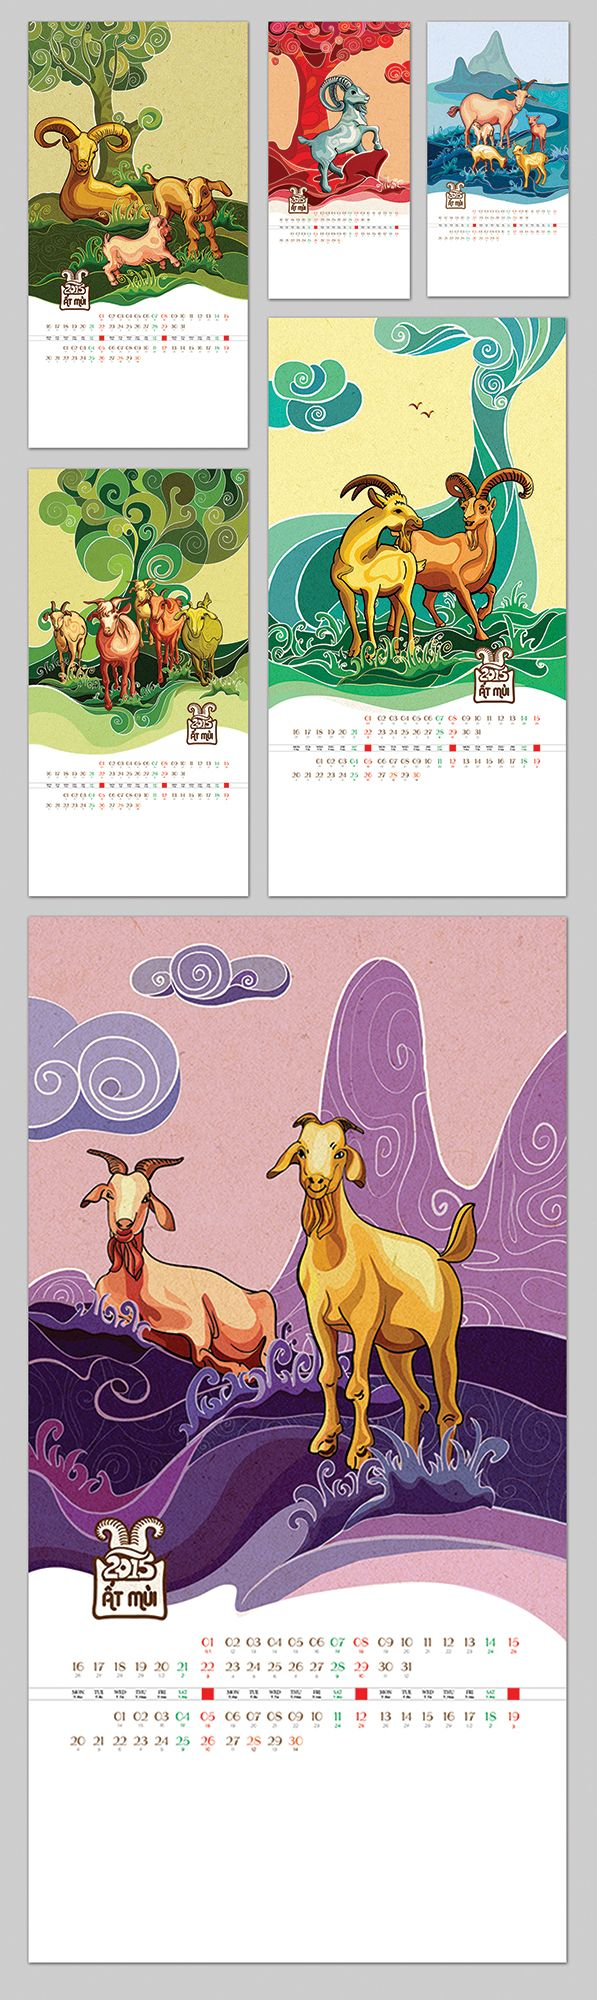 Calendar 2015 | Goat by  xilyn tran